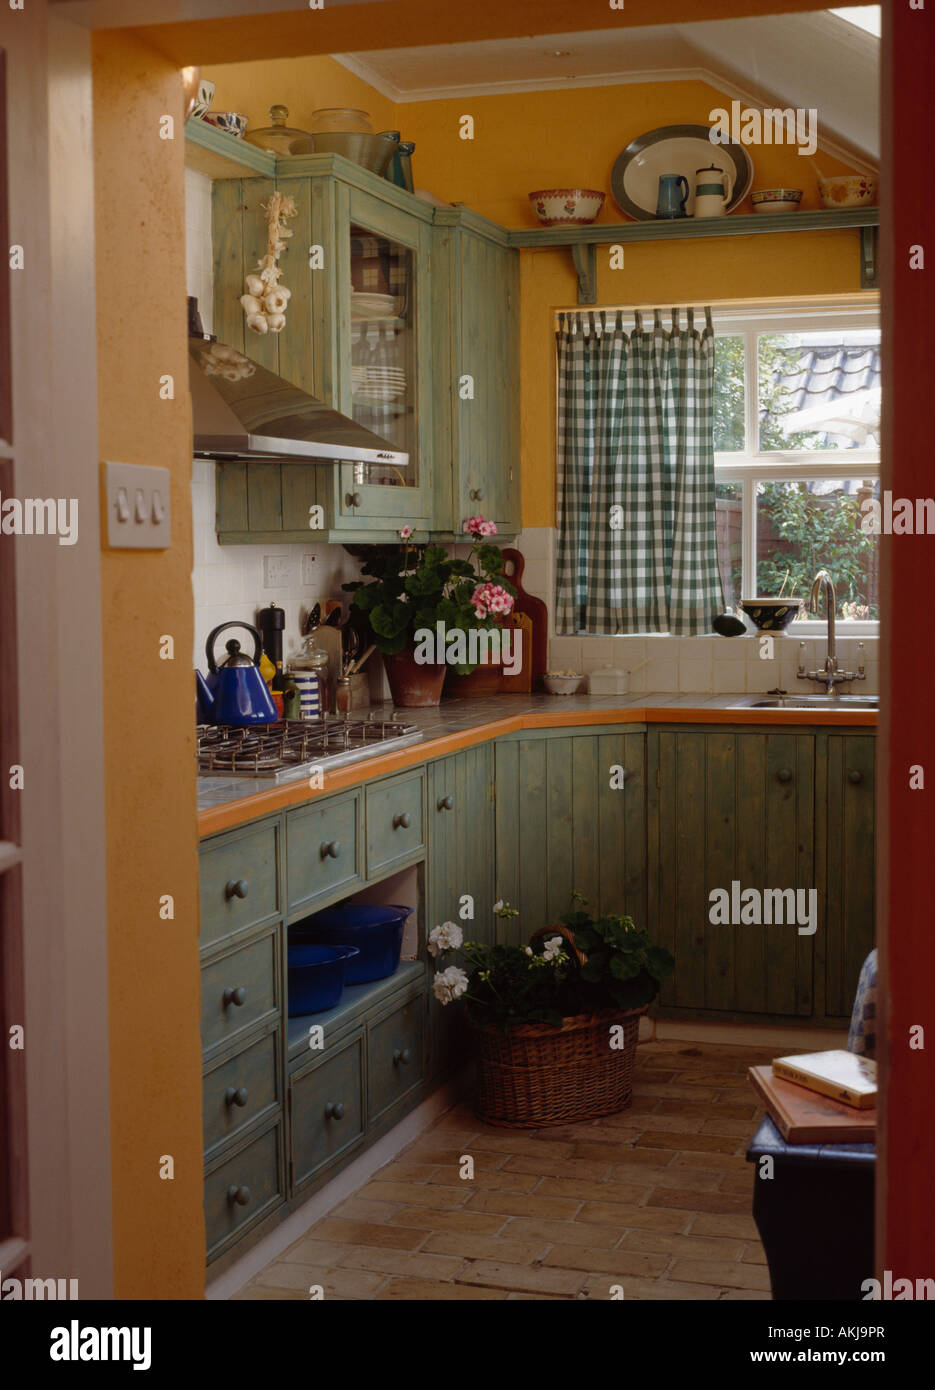 Pastel Green Cupboards And Units In Small Pale Orange Kitchen Extension  With Green Checked Curtains